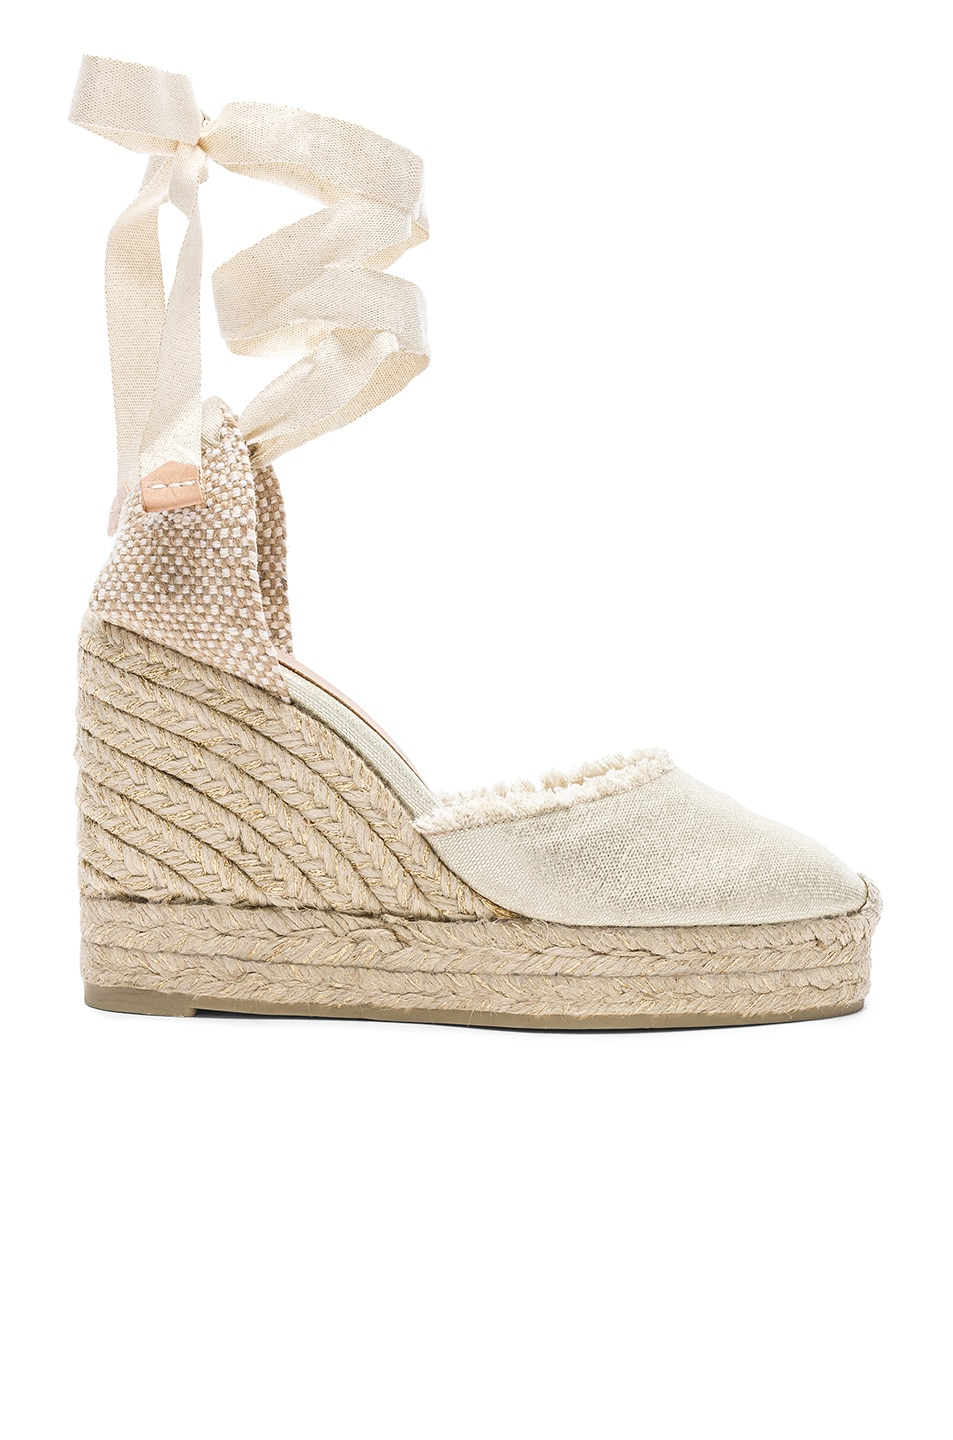 Image 1 of Castaner Canvas Canela Espadrilles in White